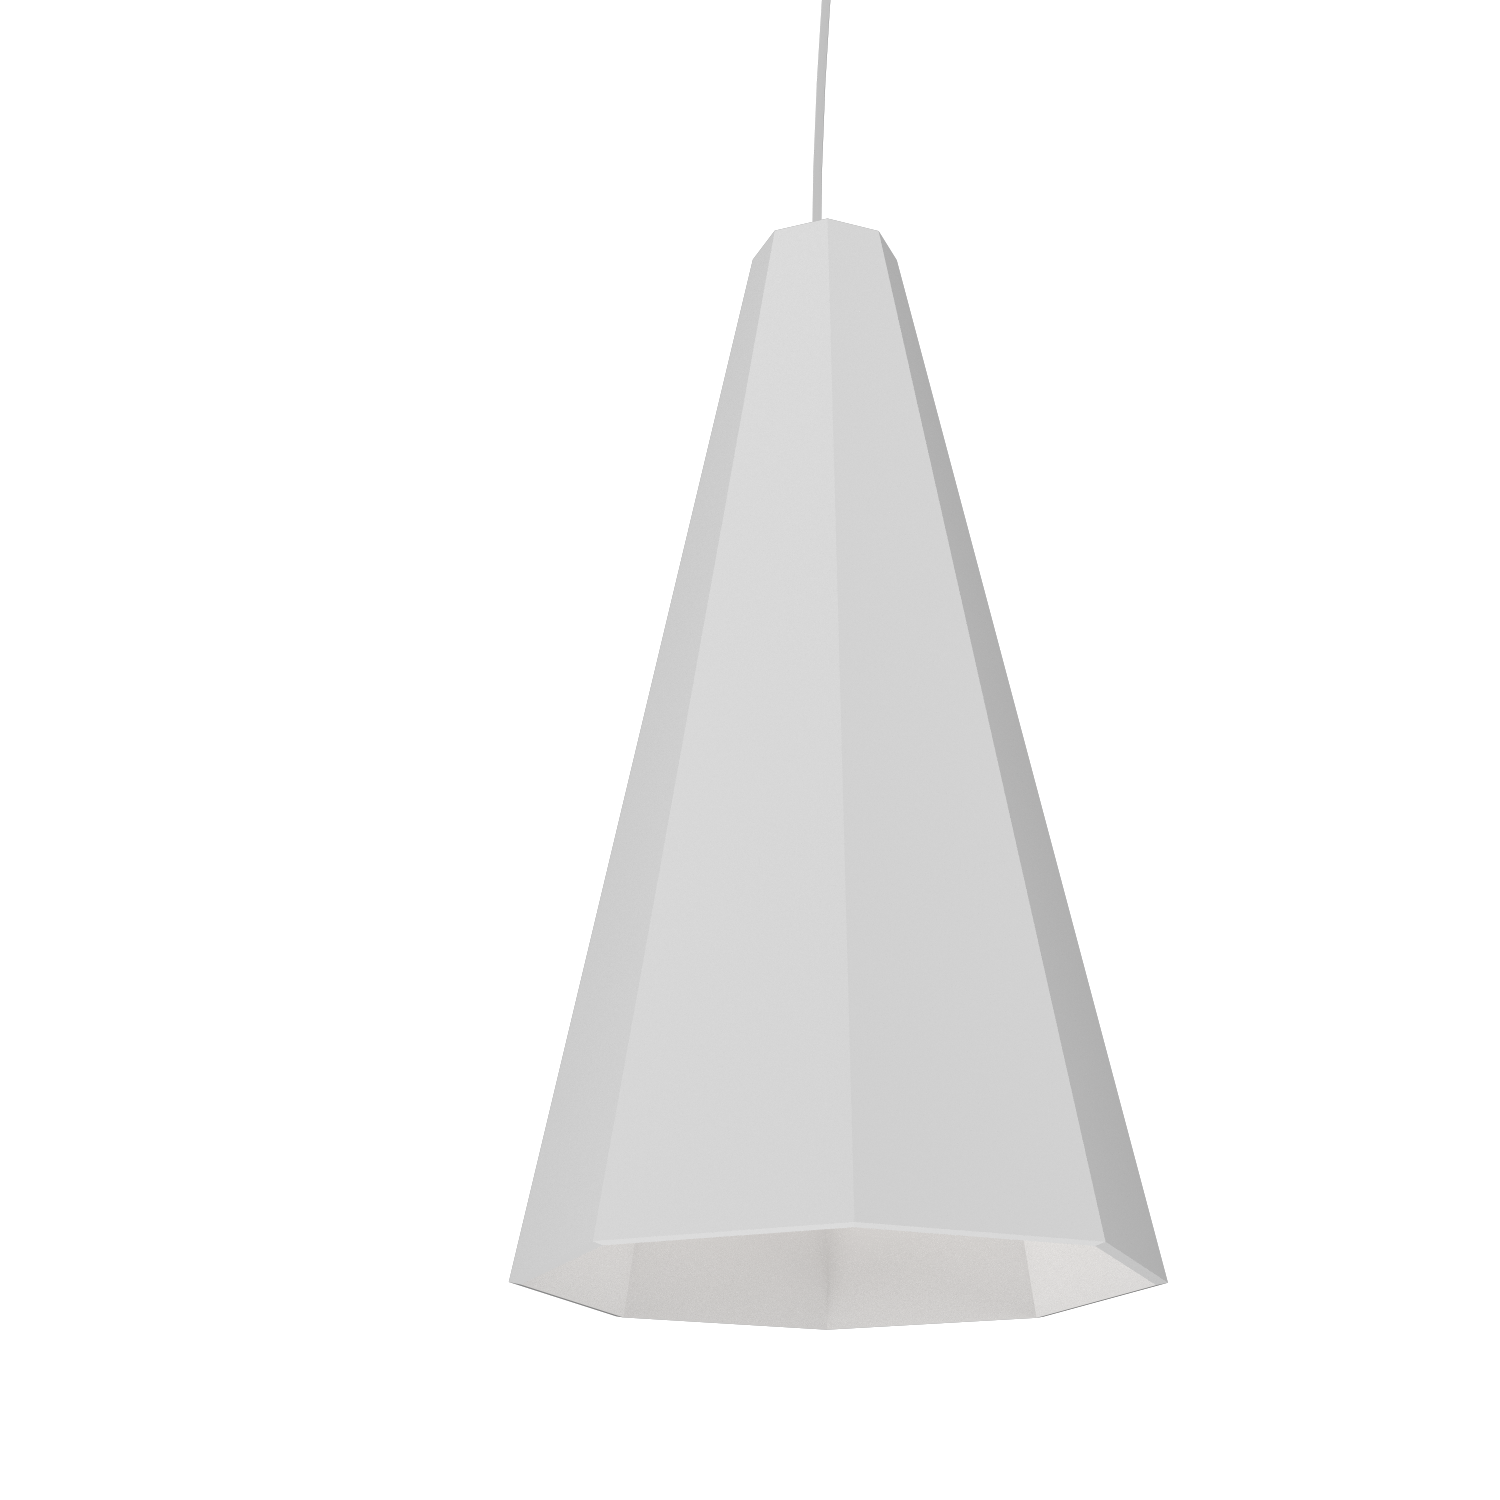 Pendant Lamp Accord Facetado 1231 - Facetada Line Accord Lighting | 07. White